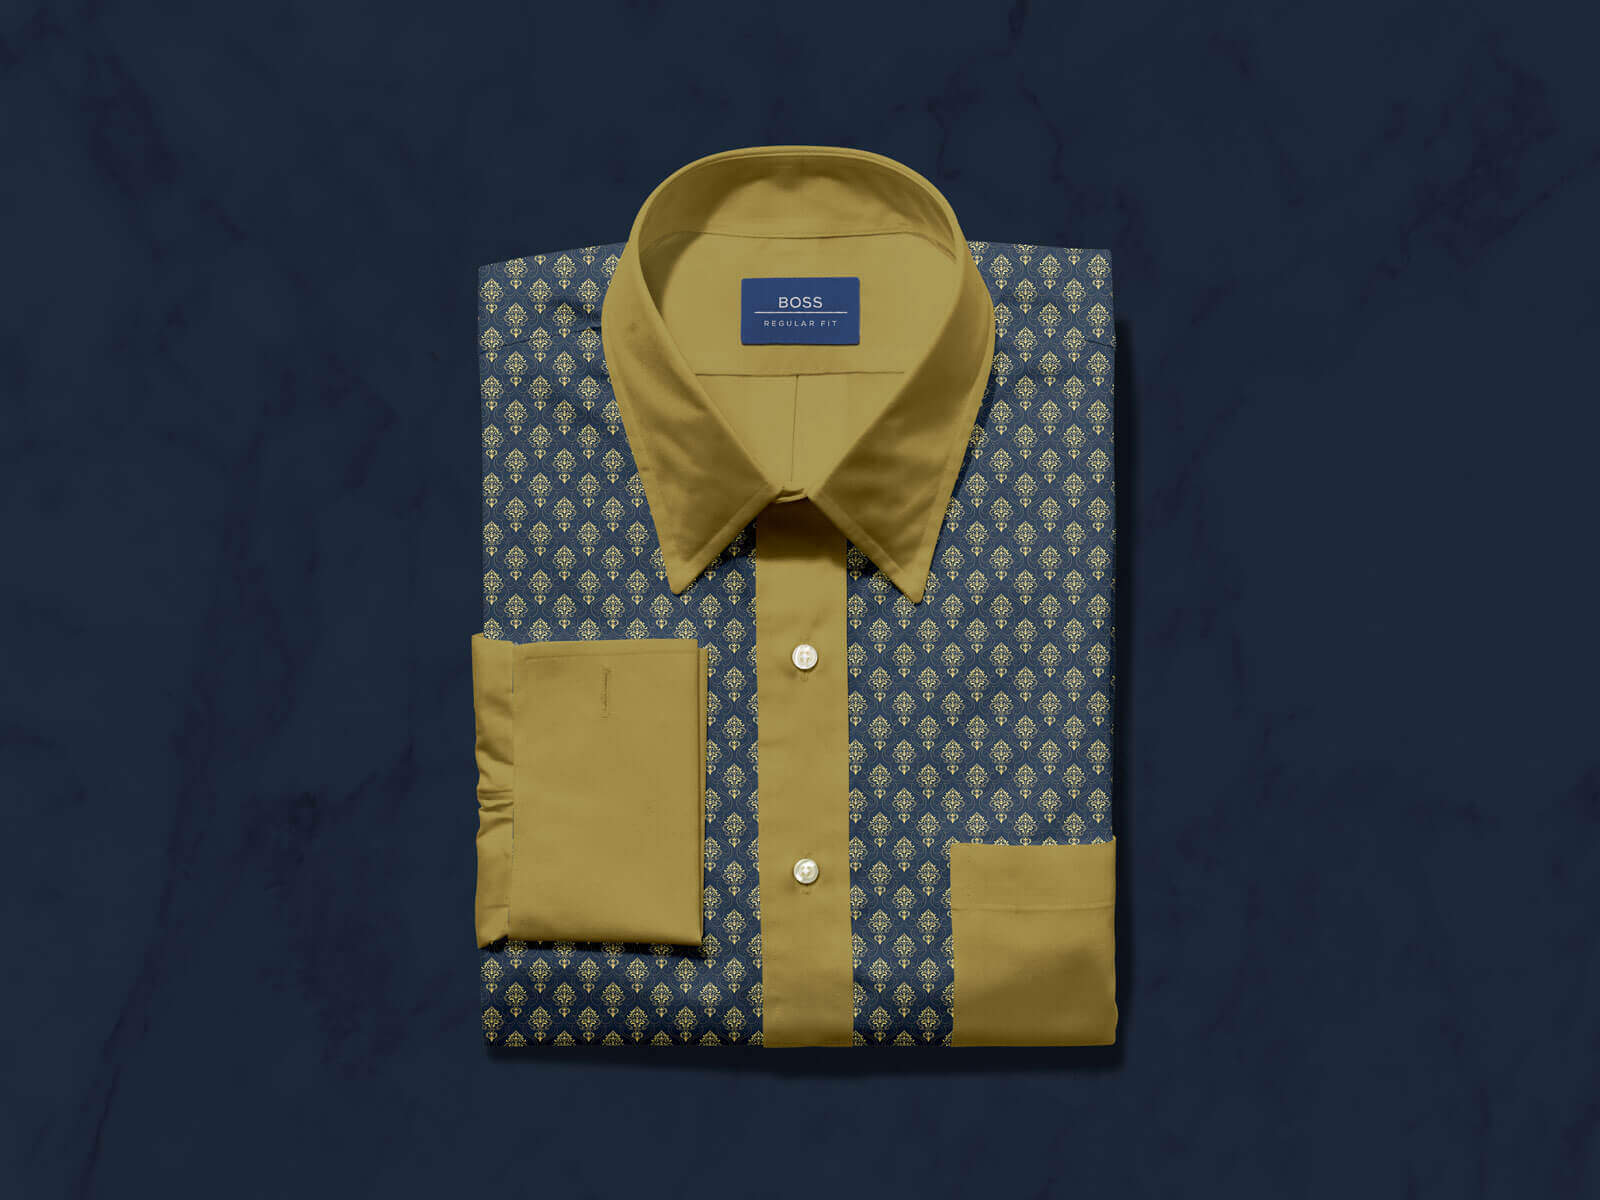 Free-Folded-Dress-Shirt-with-Label-Mockup-PSD